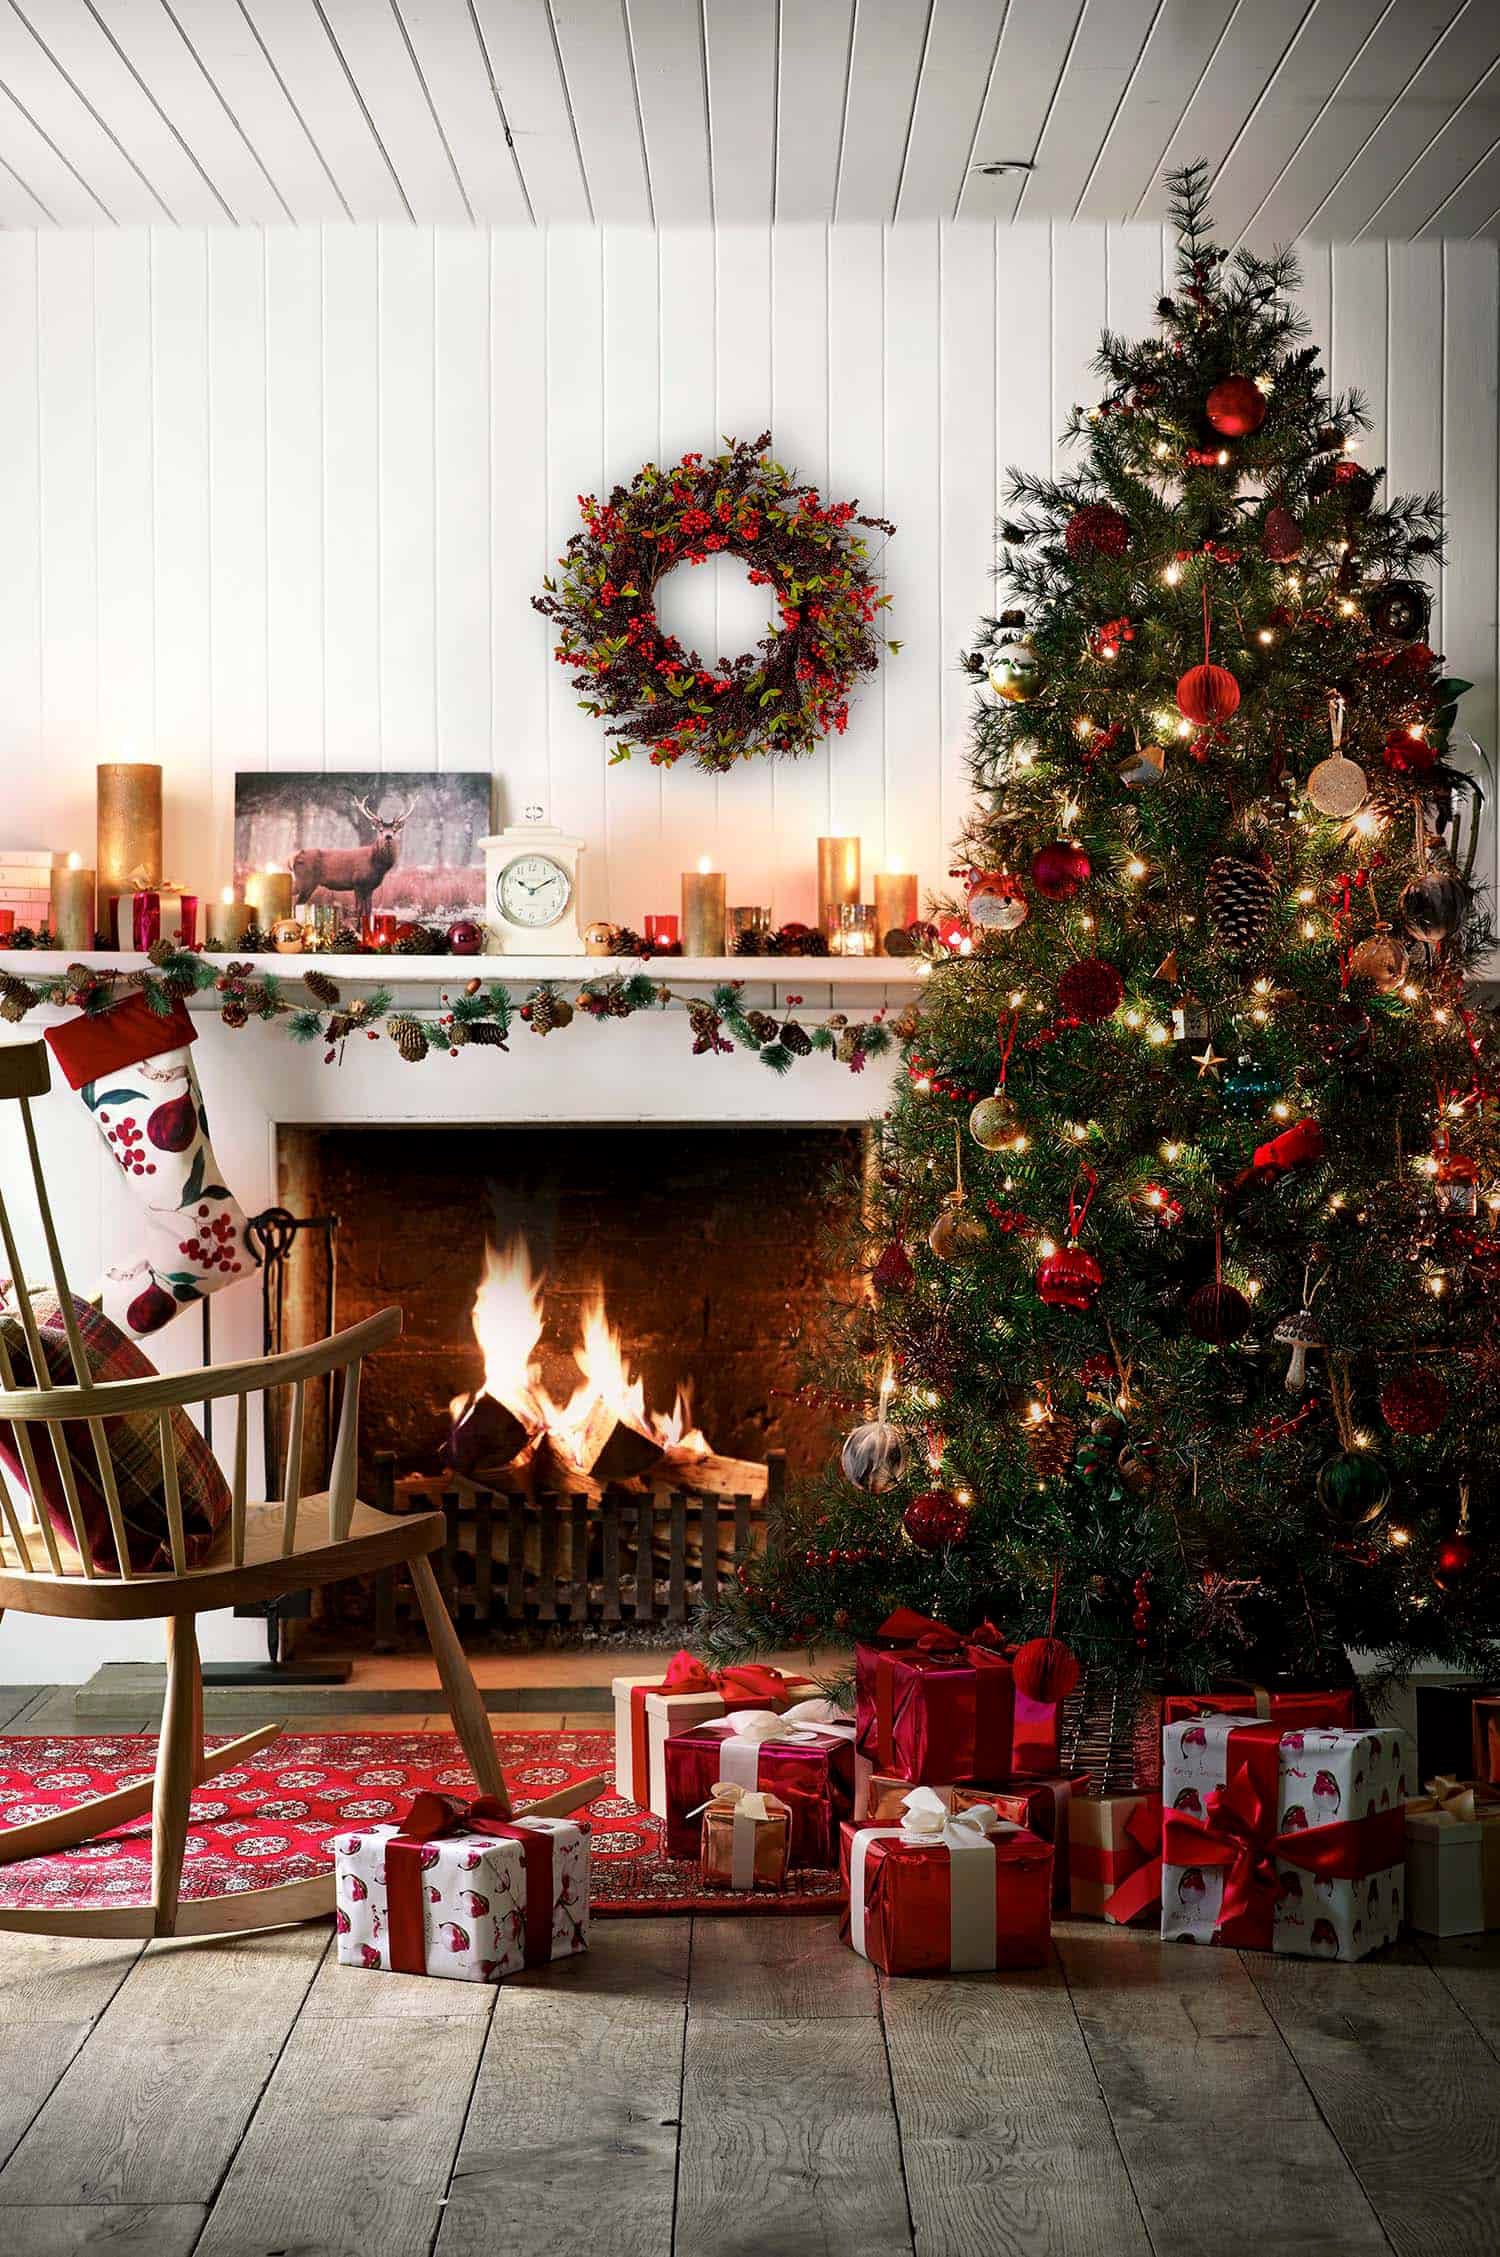 Christmas Decor Themes 15 Decorative Ideas To Inspire Your Decorations This Festive Season